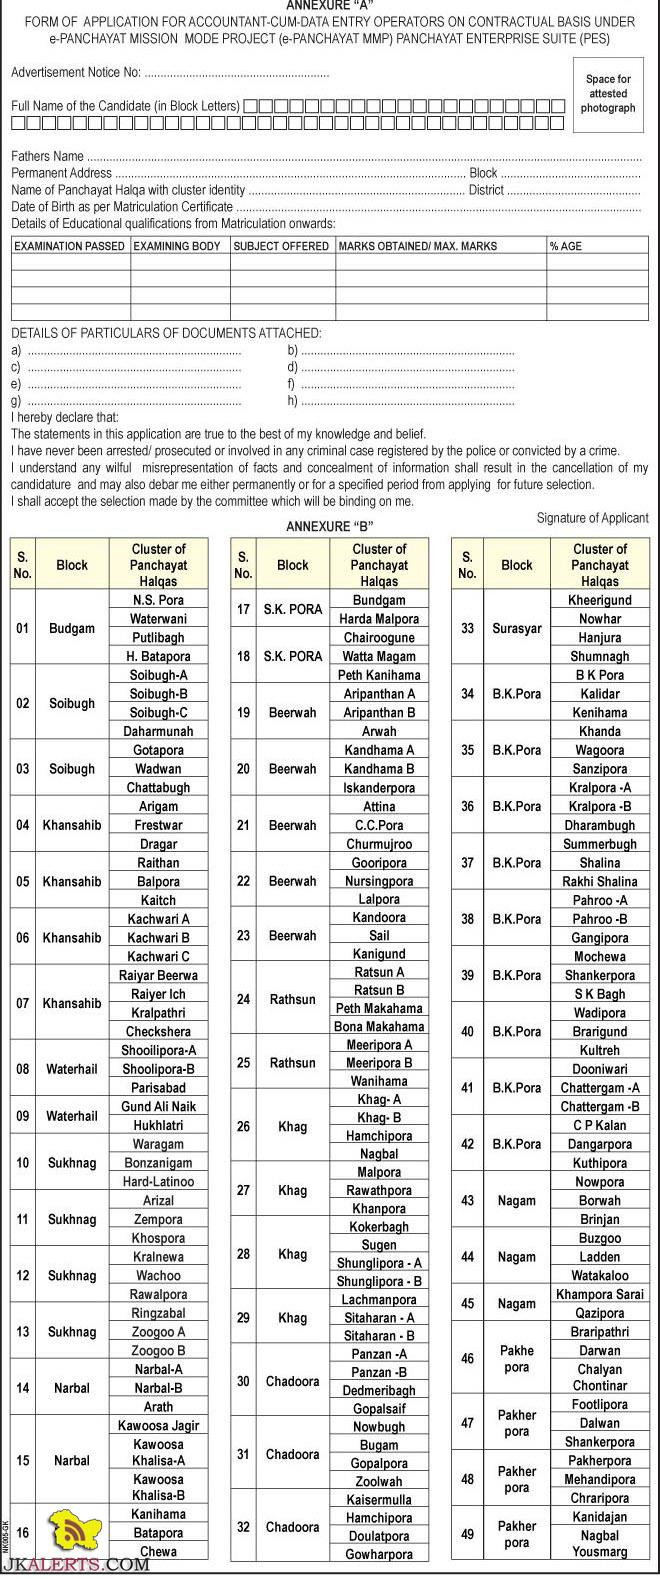 Accountant-cum-Data Entry Operators jobs in wage